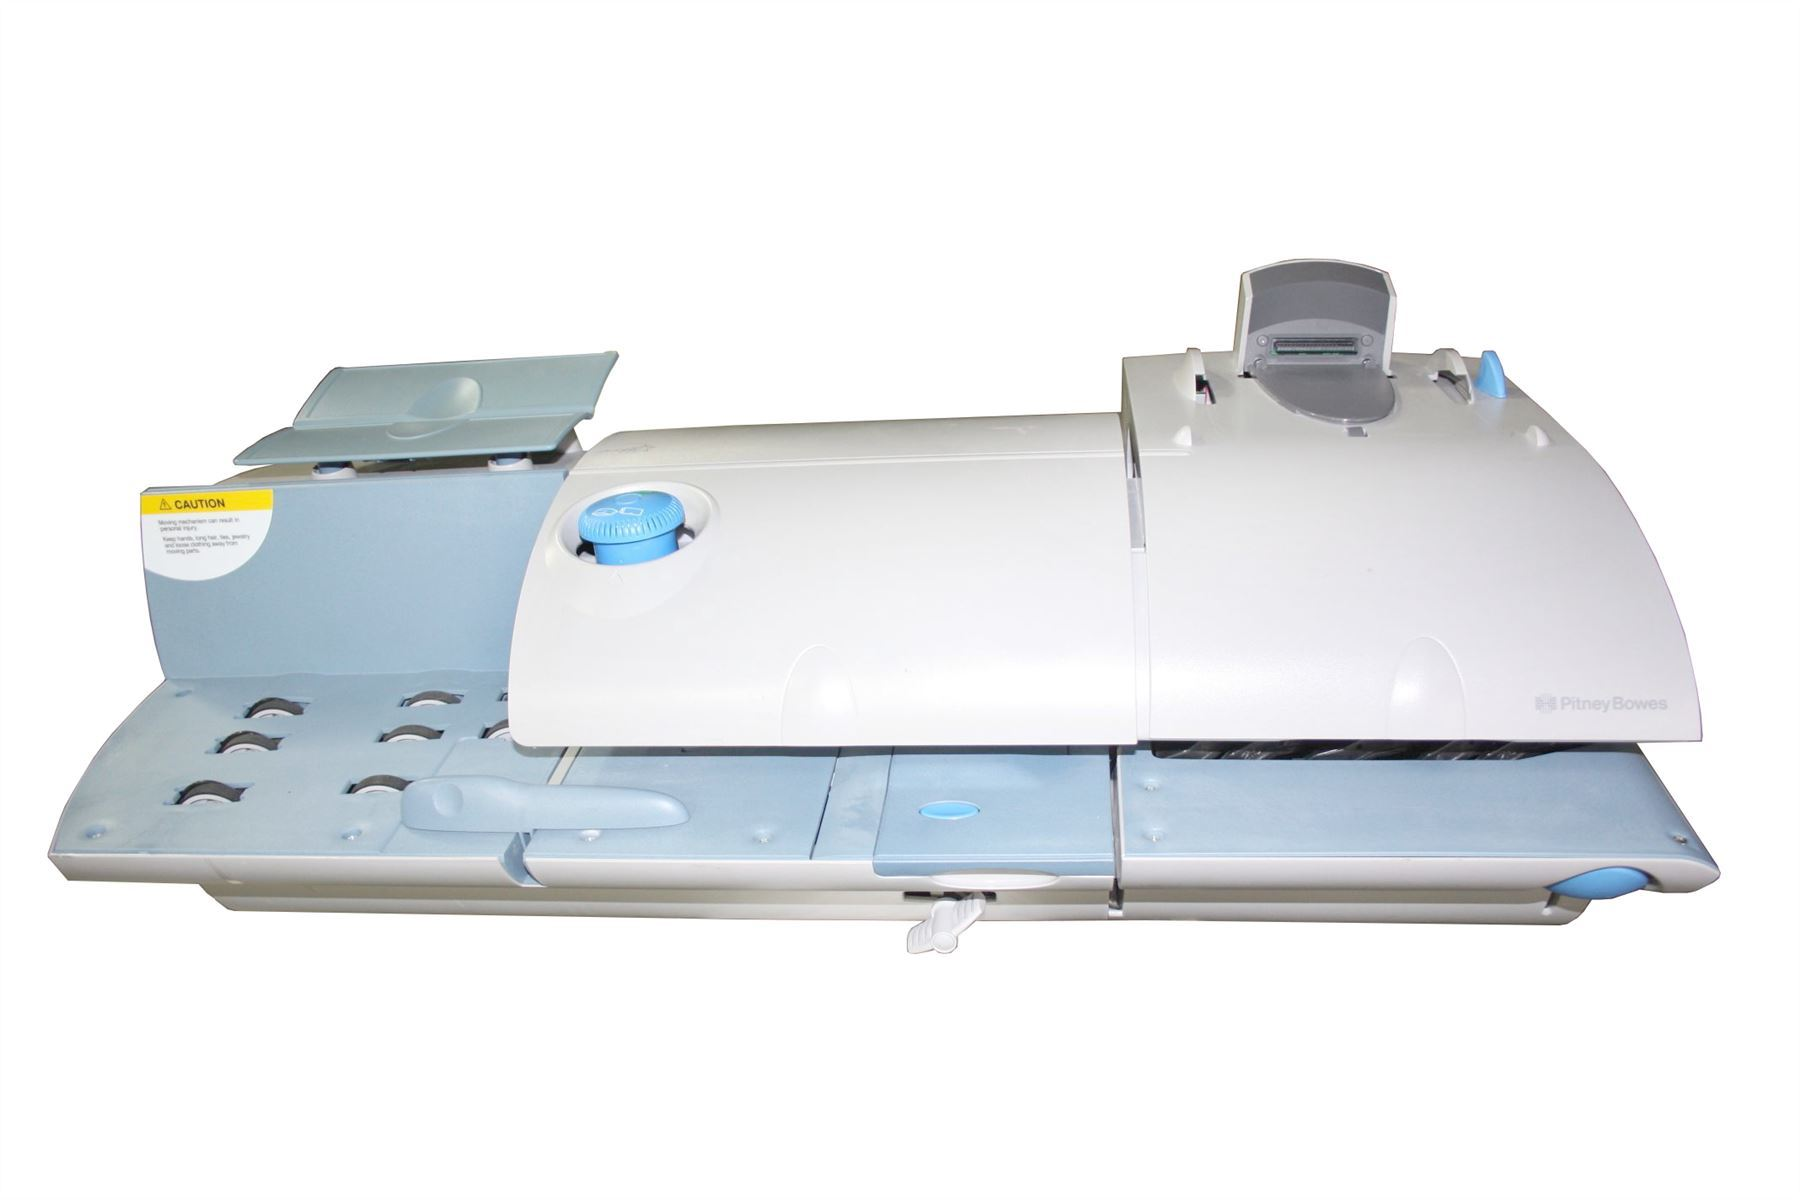 Details about Genuine Pitney Bowes DM500 Envelope Sealer Mailing Machine -  FOR PARTS/REPAIR